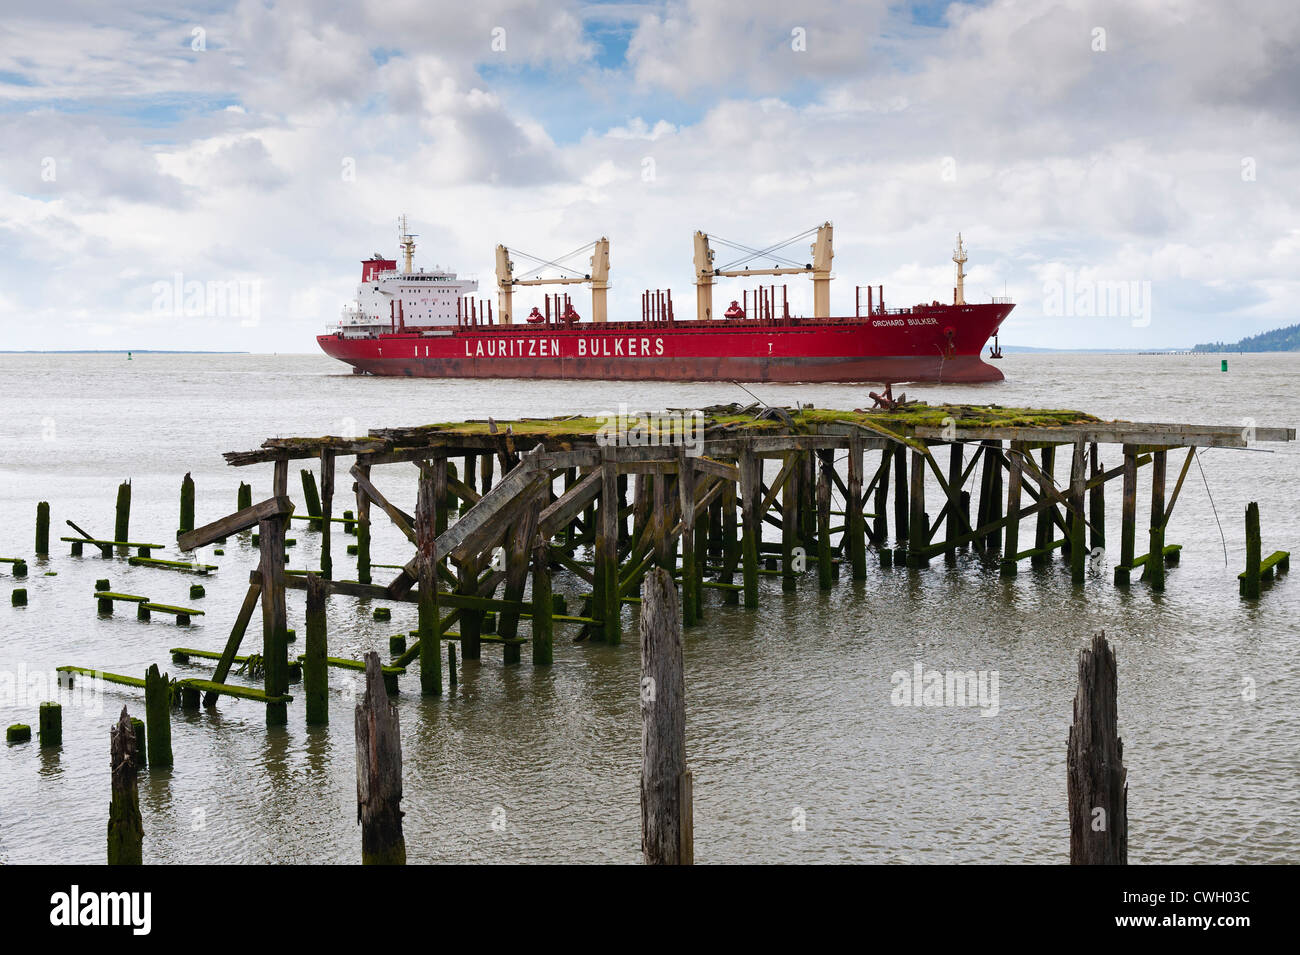 Cargo ship Orchard Bulker of Lauritzen Bulkers shipping line steams upriver in the navigable shipping channel on Stock Photo